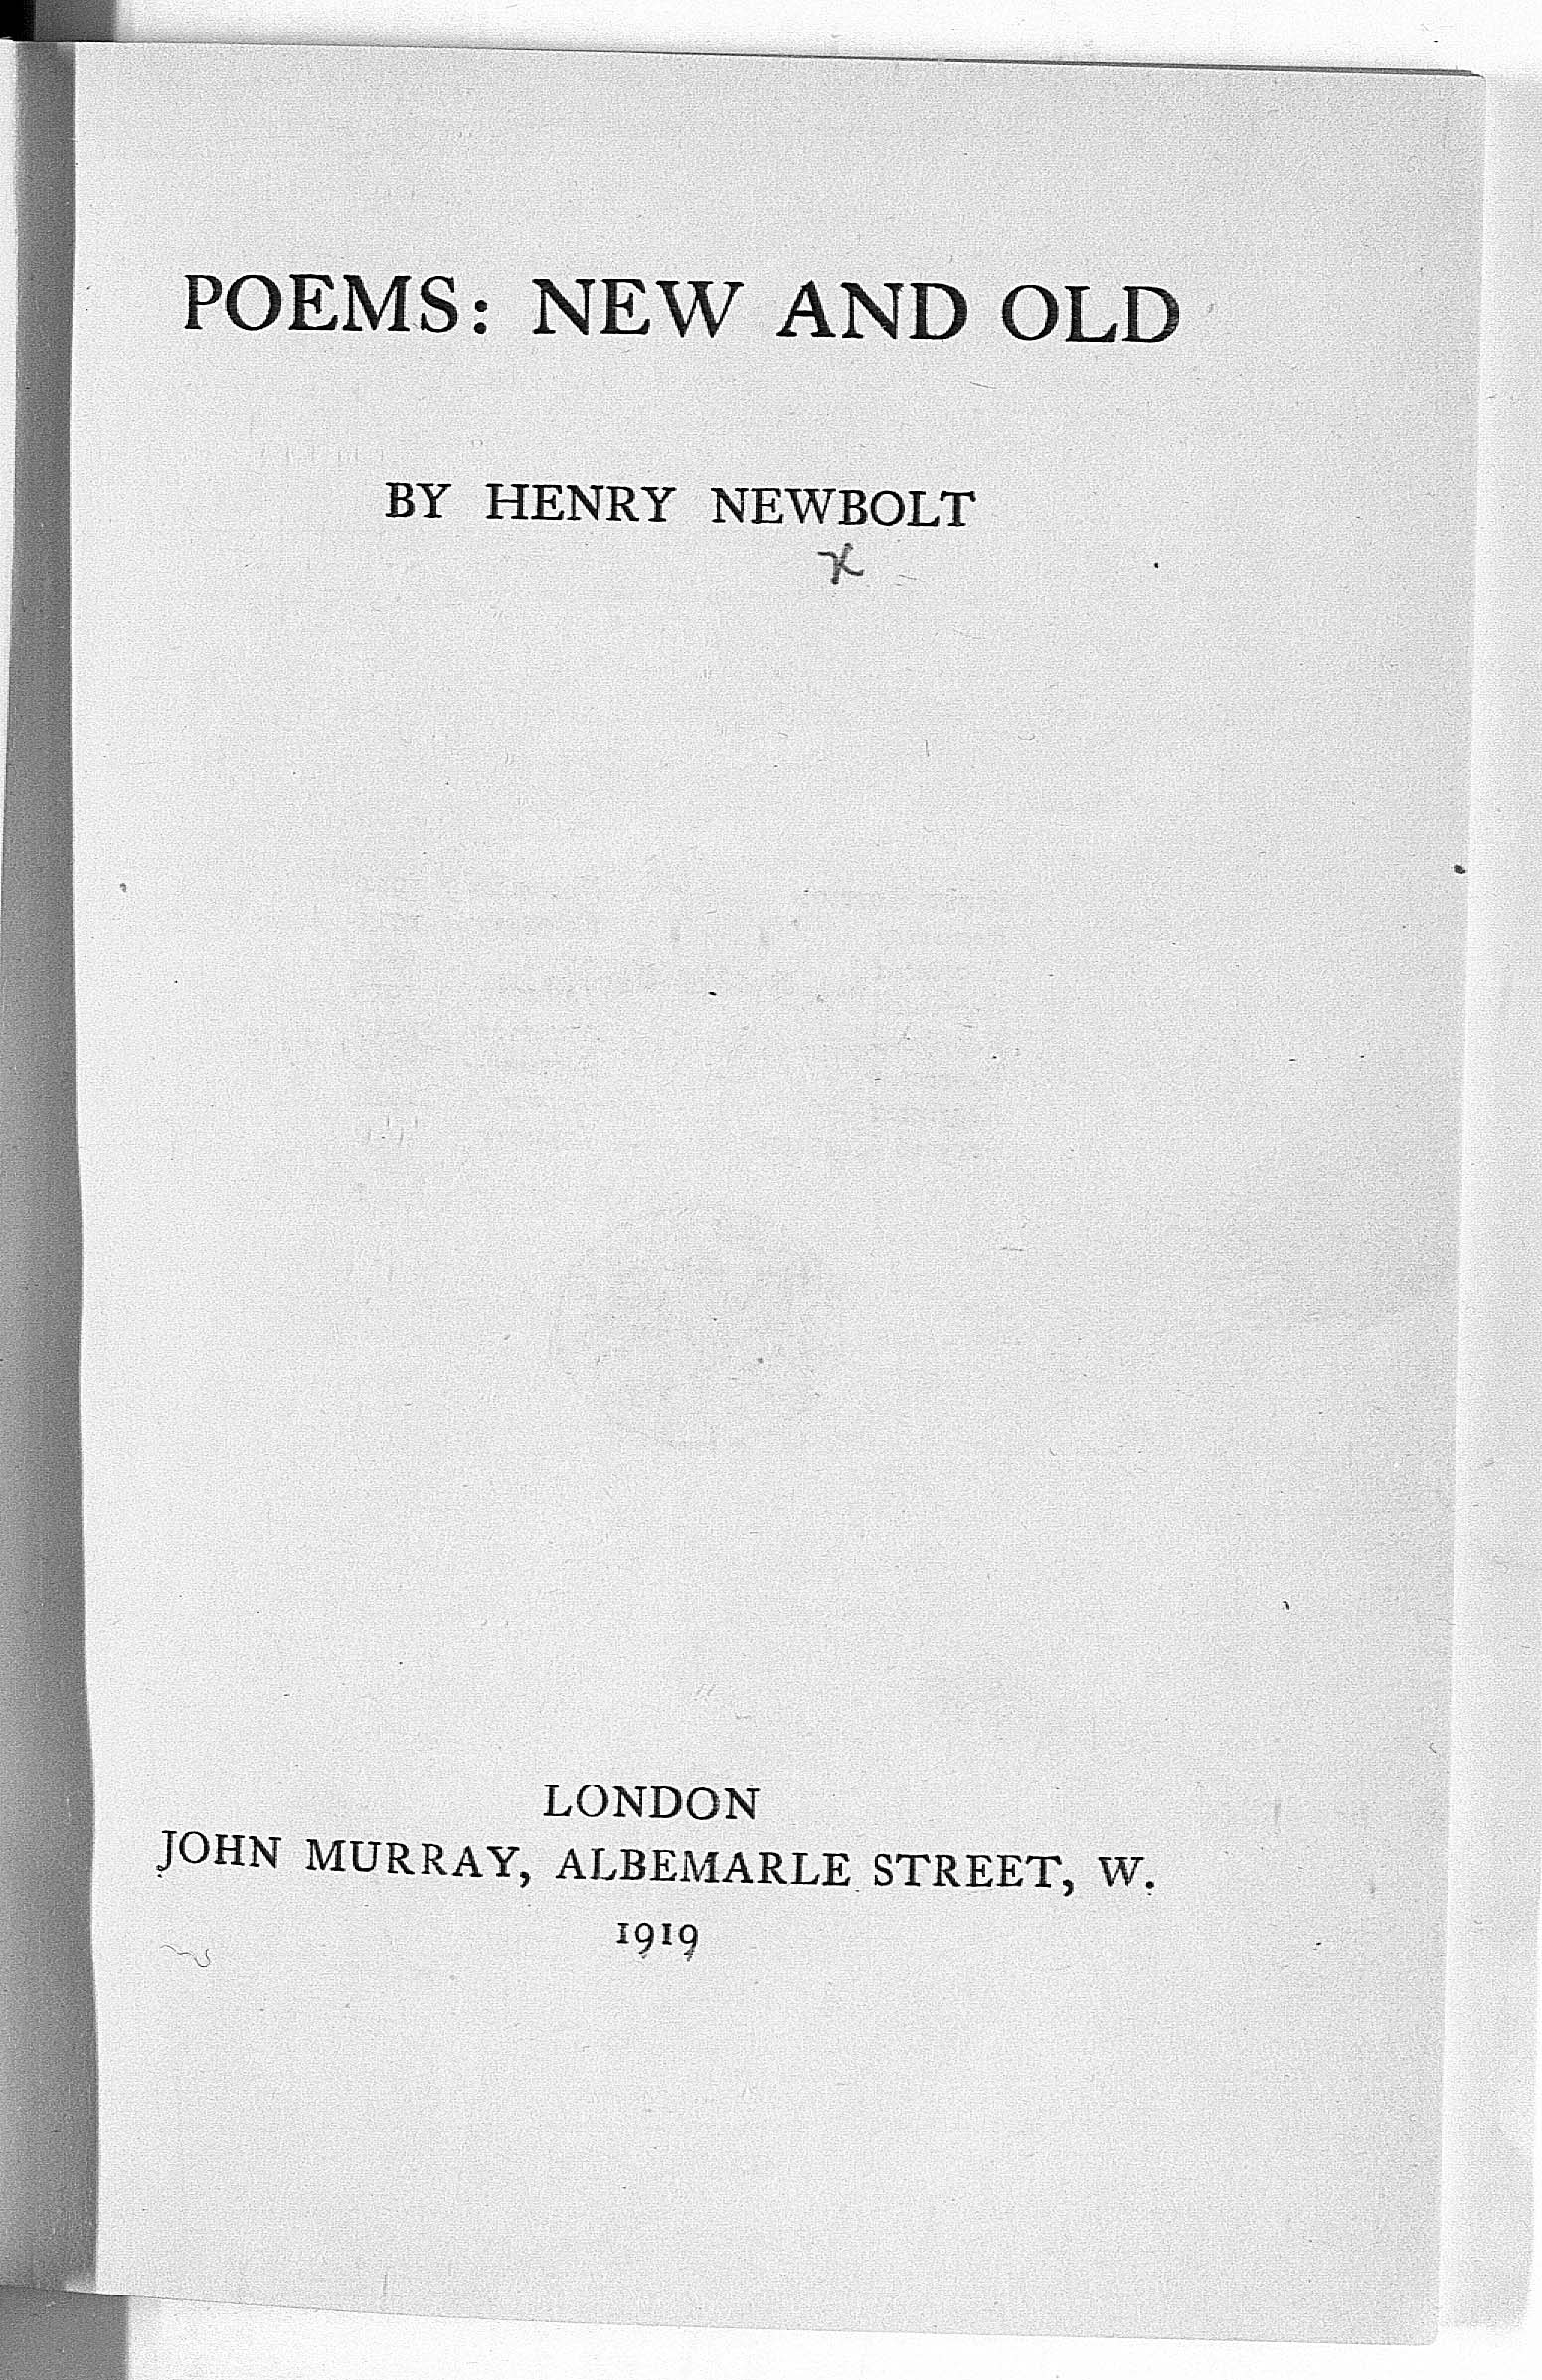 First published in 1912, Henry Newbolt's patriotic poems were reprinted numerous times during the war.